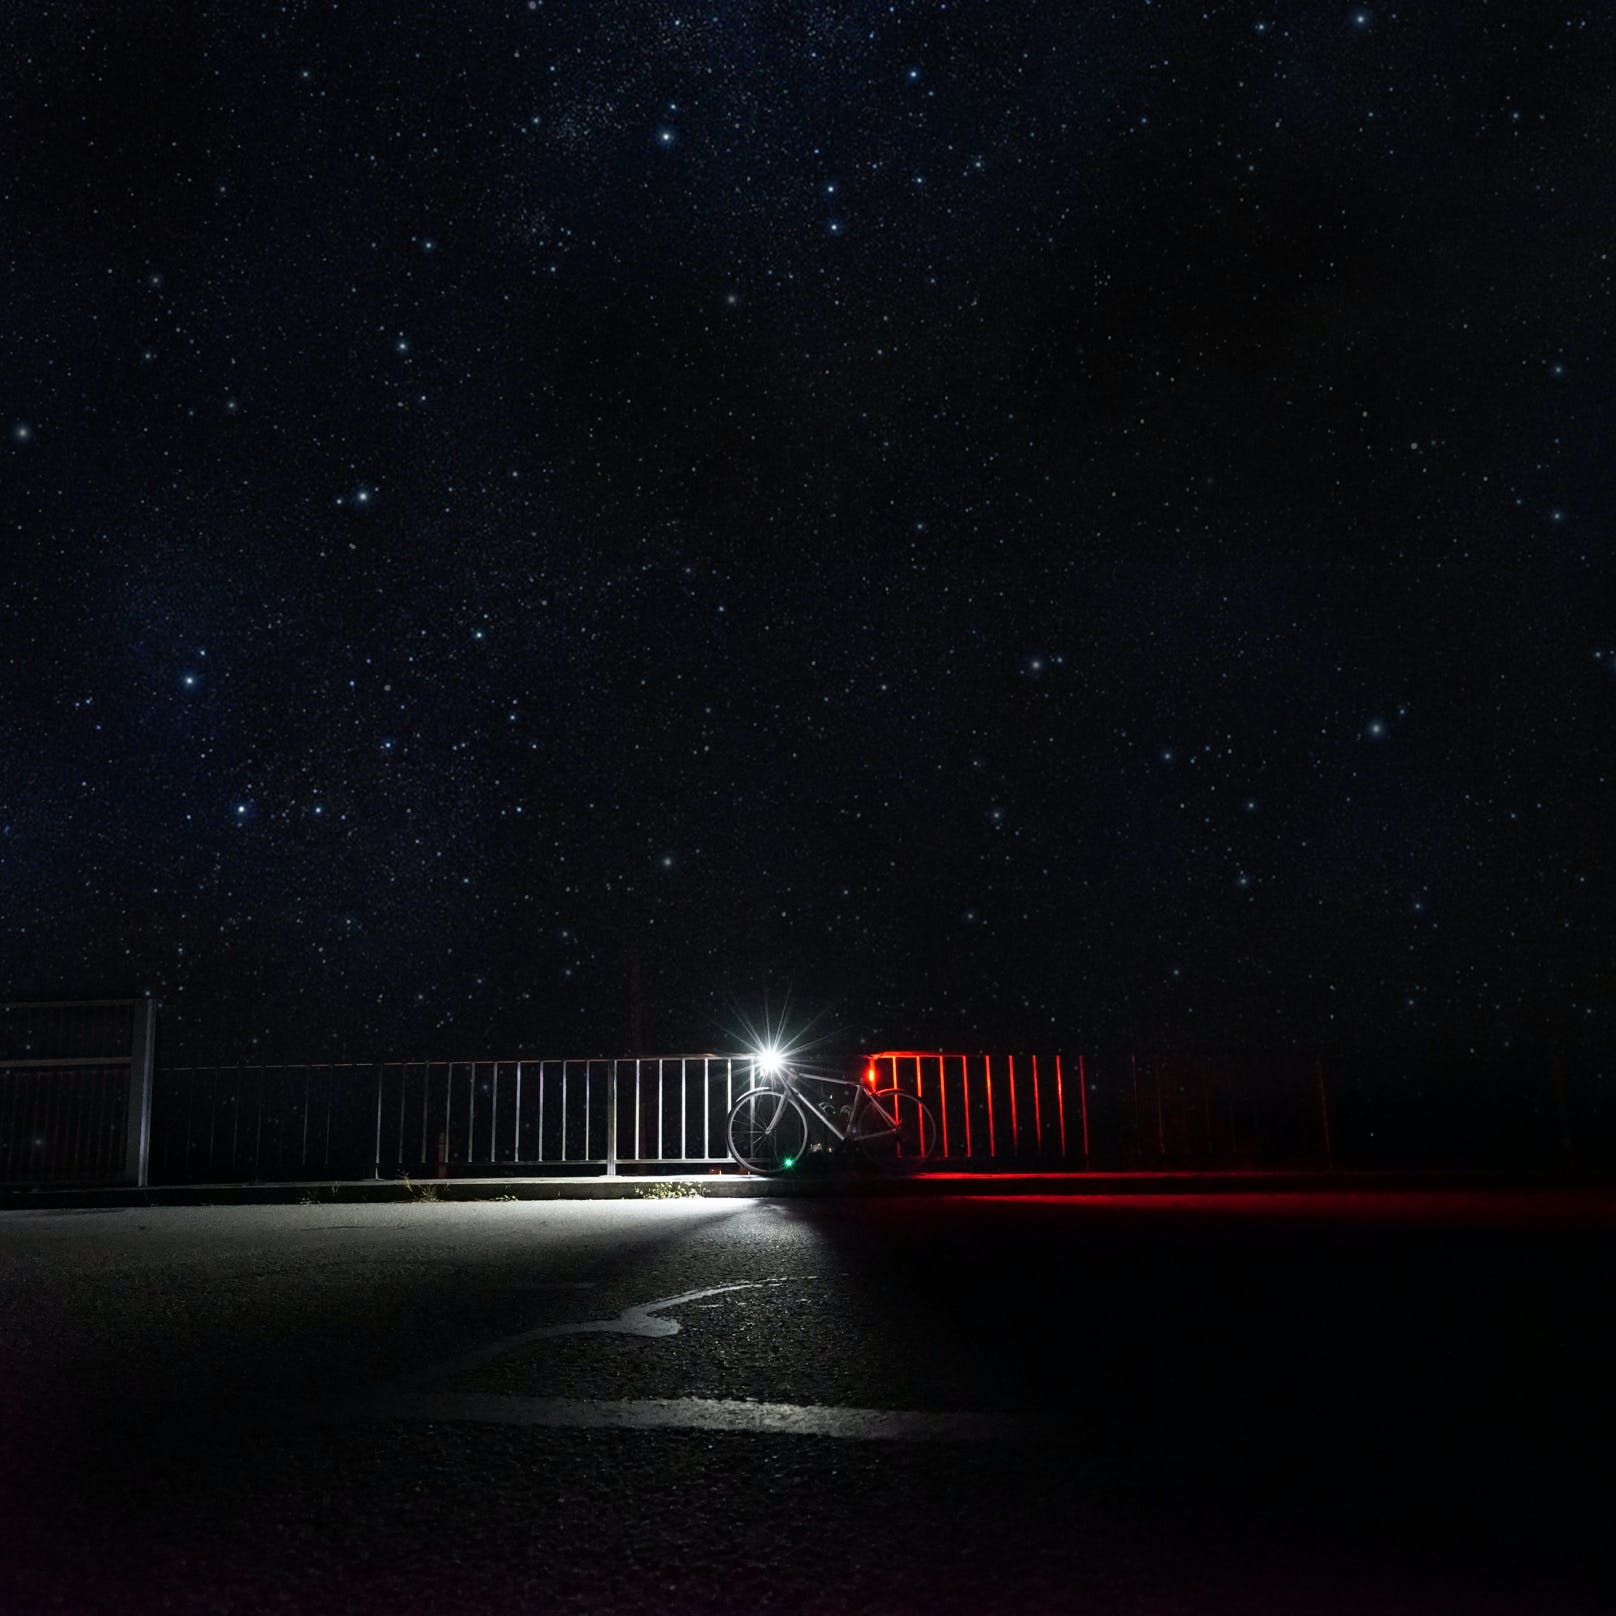 Bicycle With Light Parked Under Starry Sky